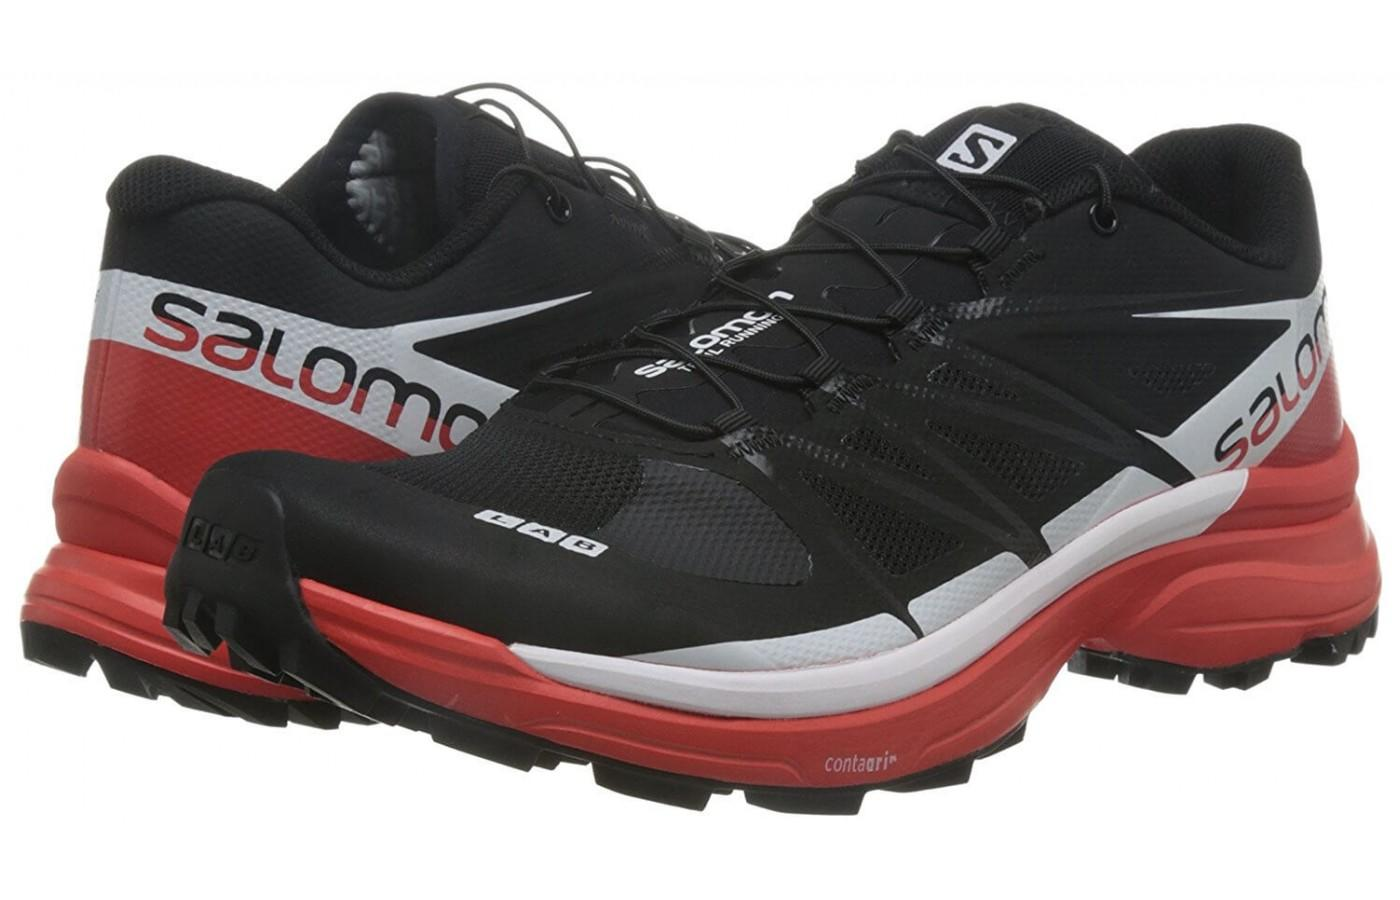 Salomon S-Lab Wings 8 SG features SENSIFIT technology